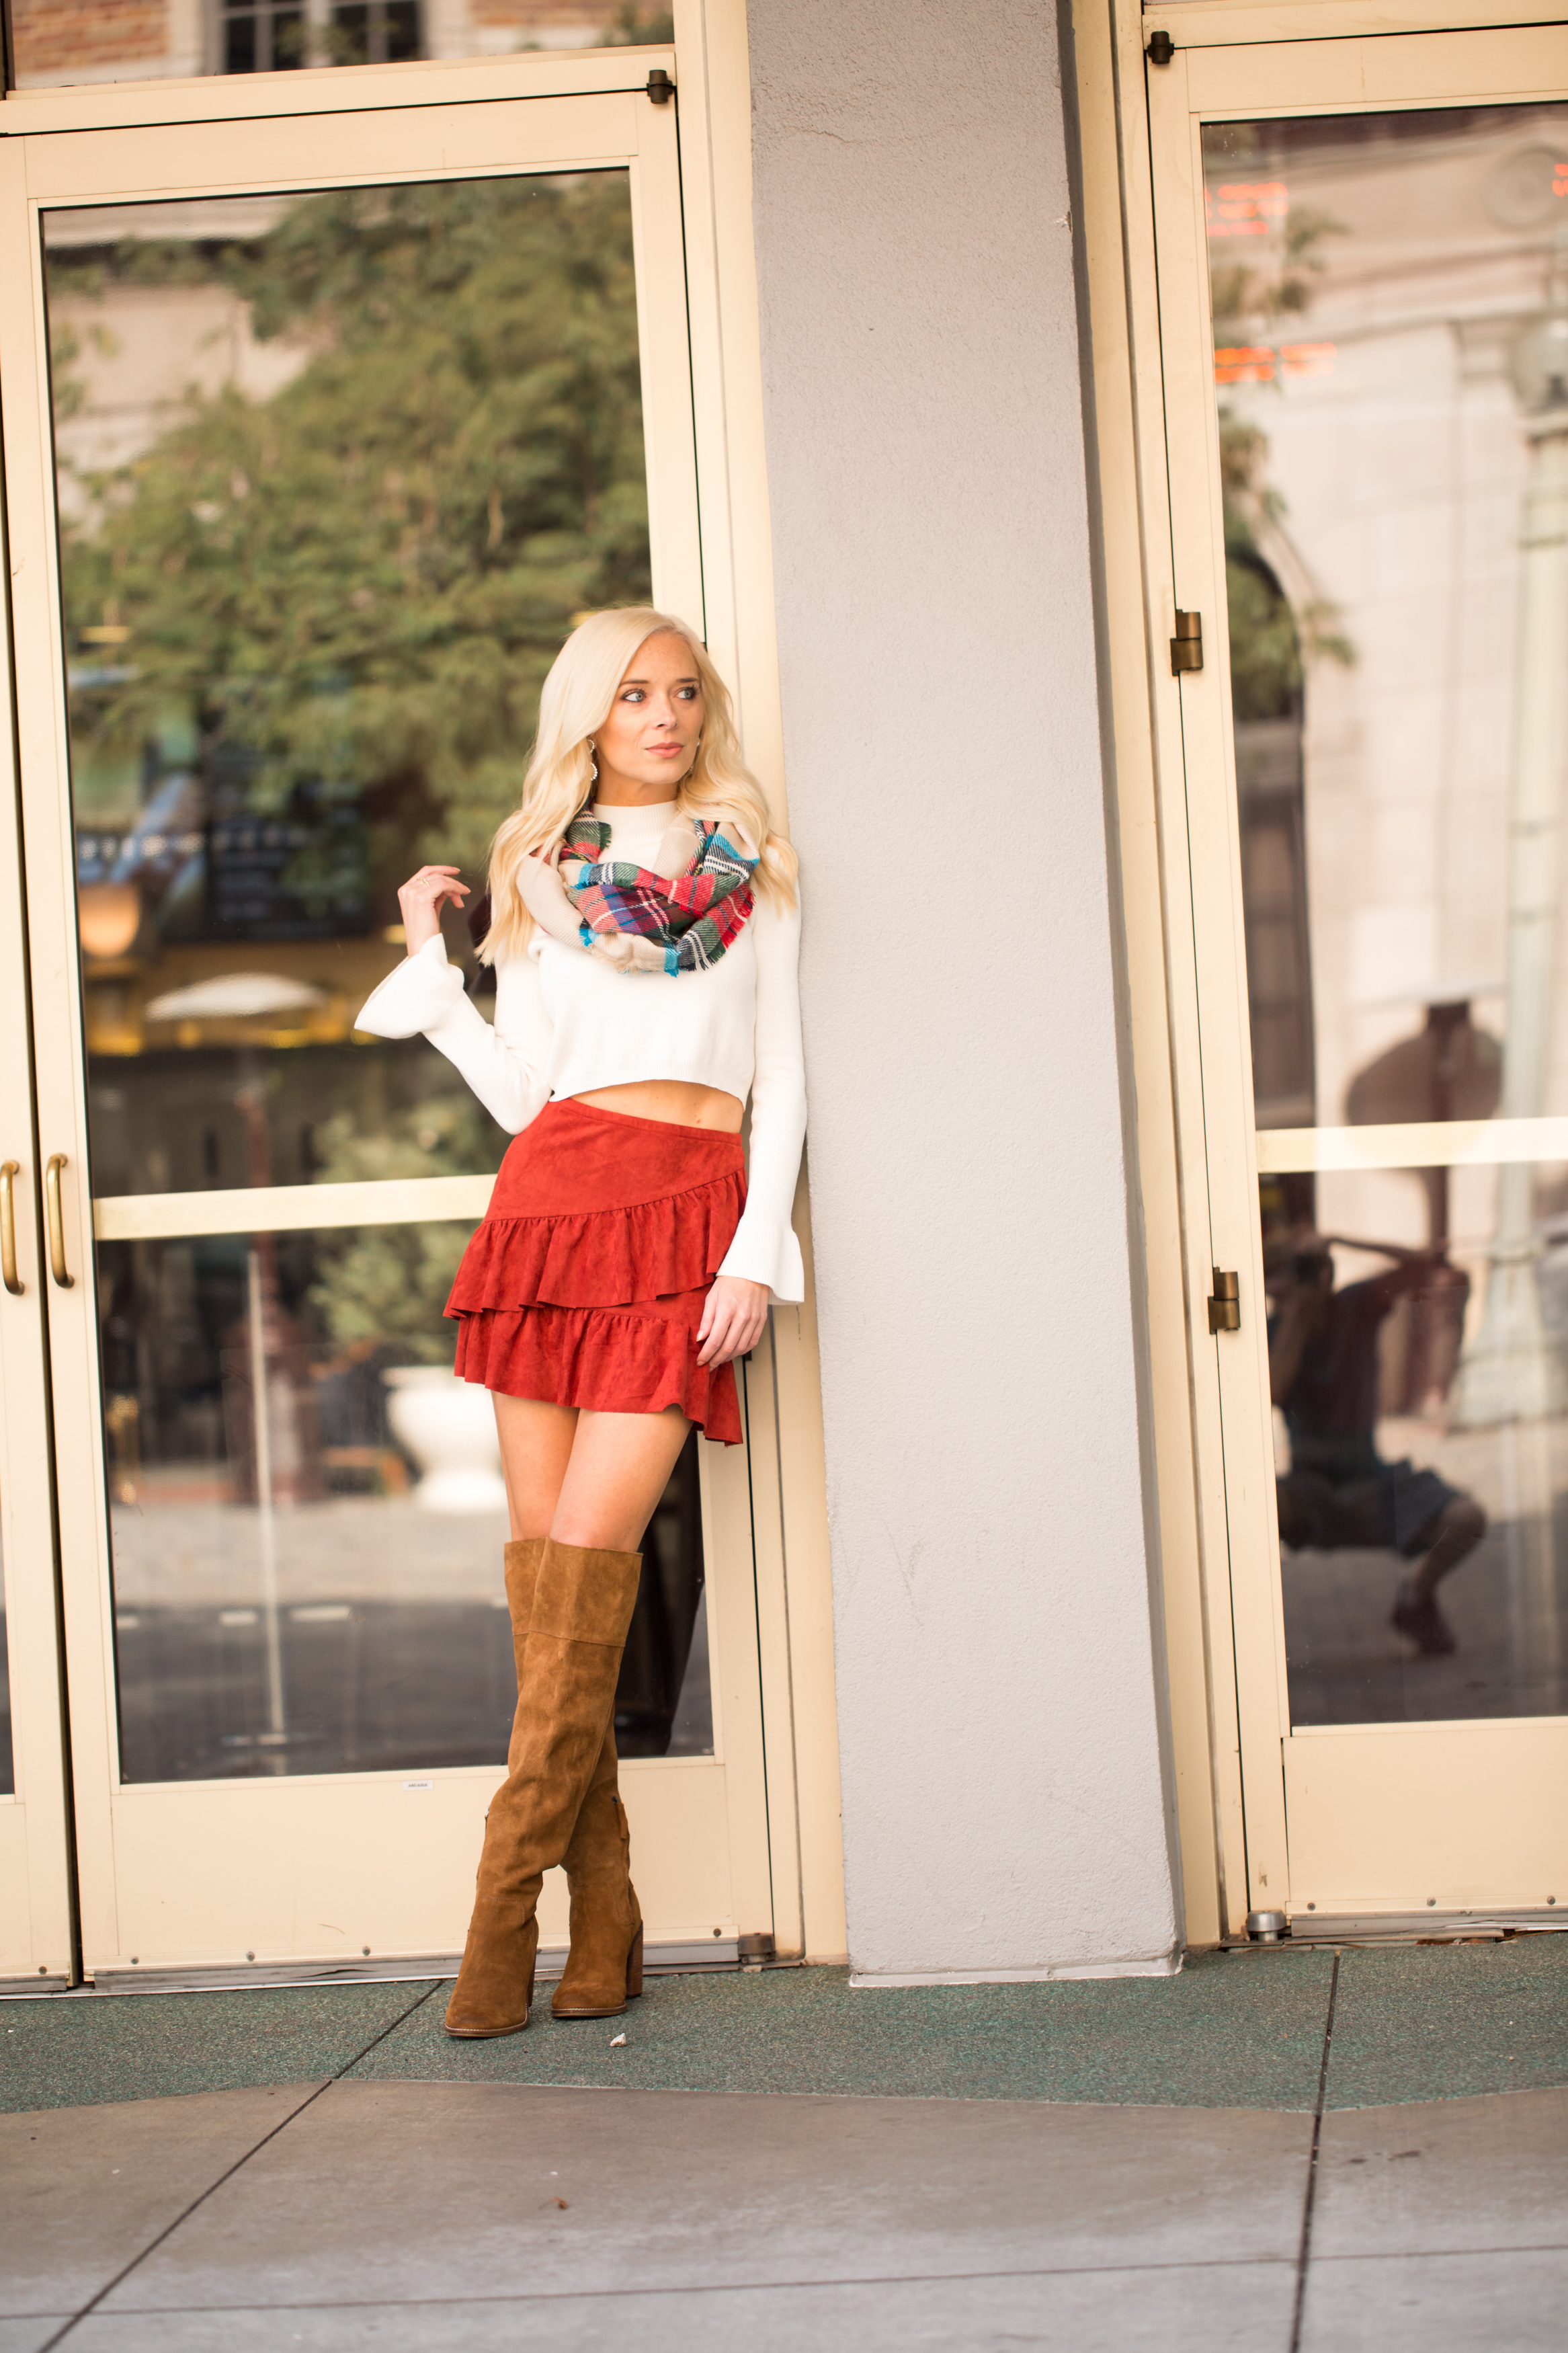 My Favorite Fall Look | OTK Boots, Ruffle Mini-skirts and Scarves